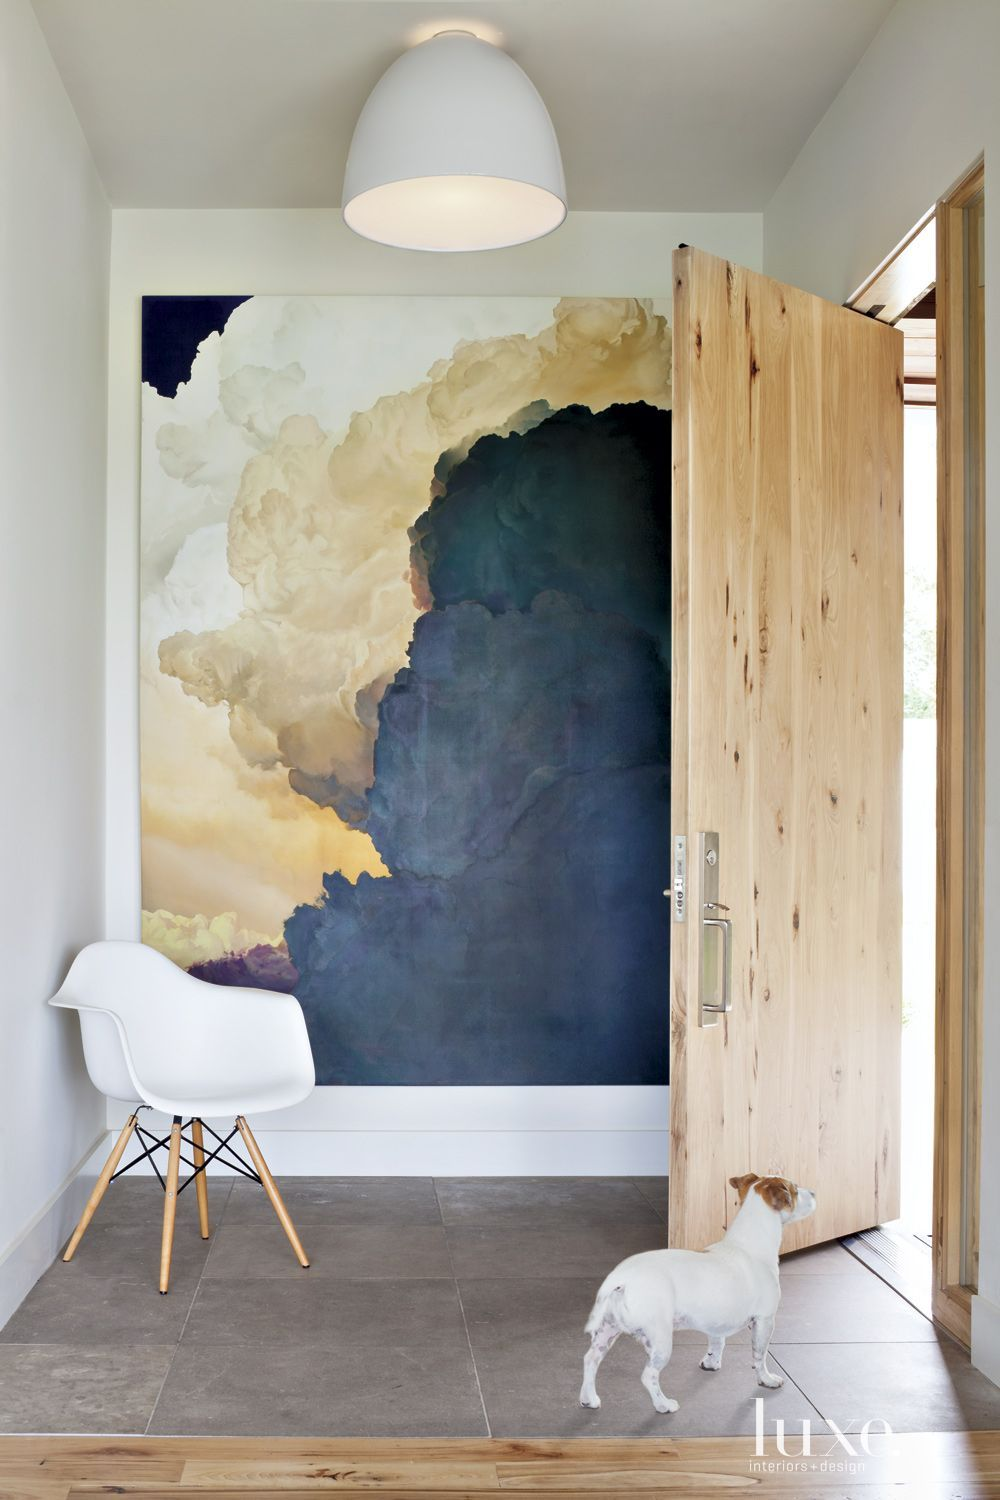 These foyers set the tone for the rest of the home with art pieces that stand out